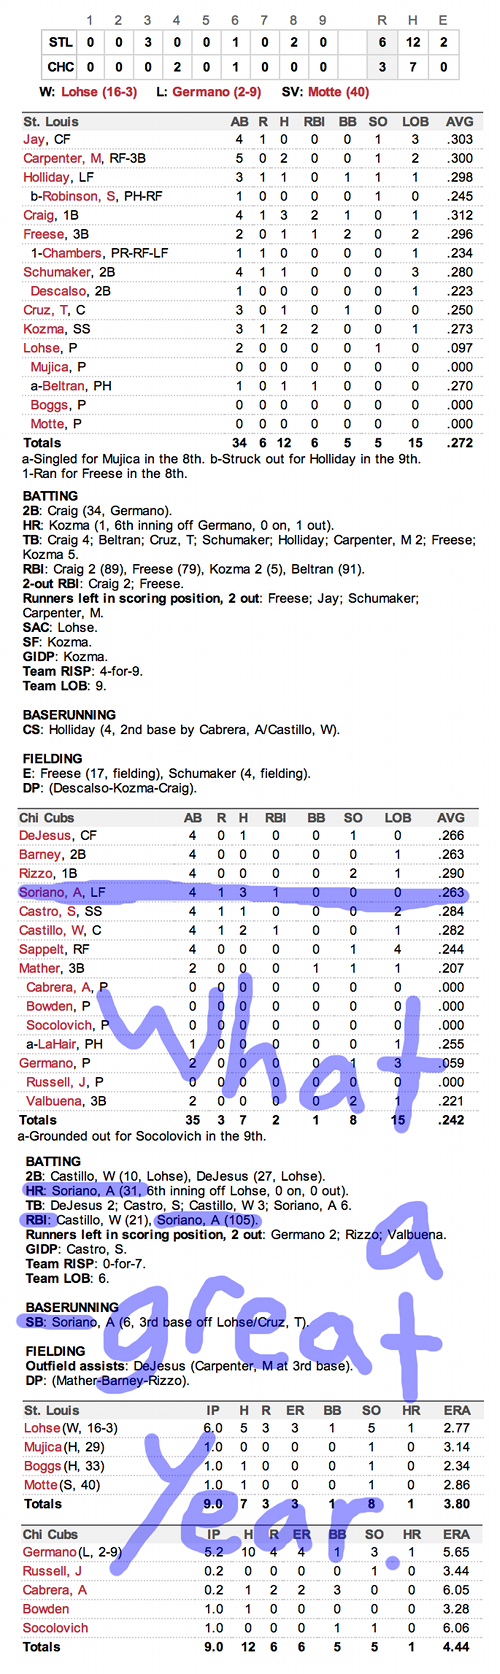 Enhanced Box Score: Cardinals 6, Cubs 3 – September 23, 2012